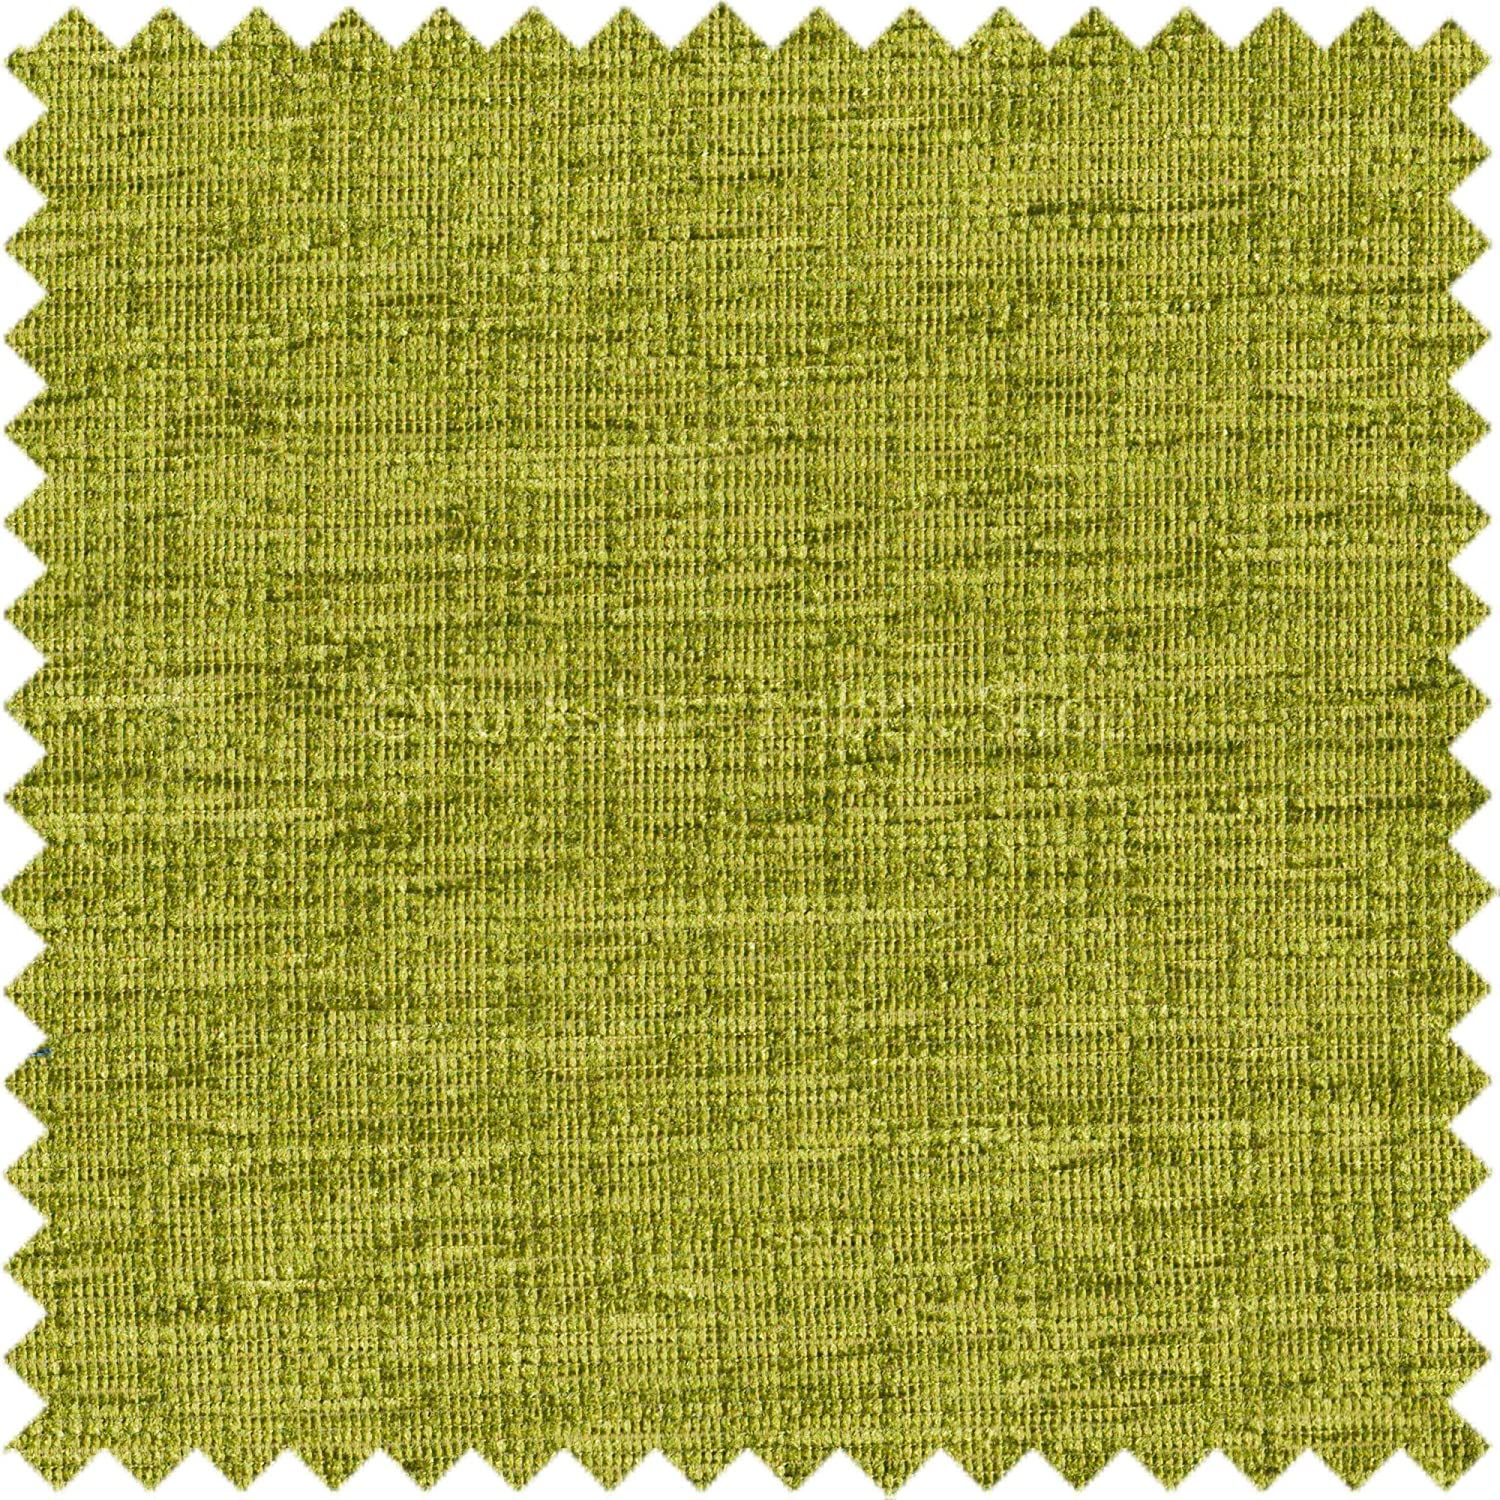 Soft Shimmering Chenille Upholstery Material Fabrics Lime Green